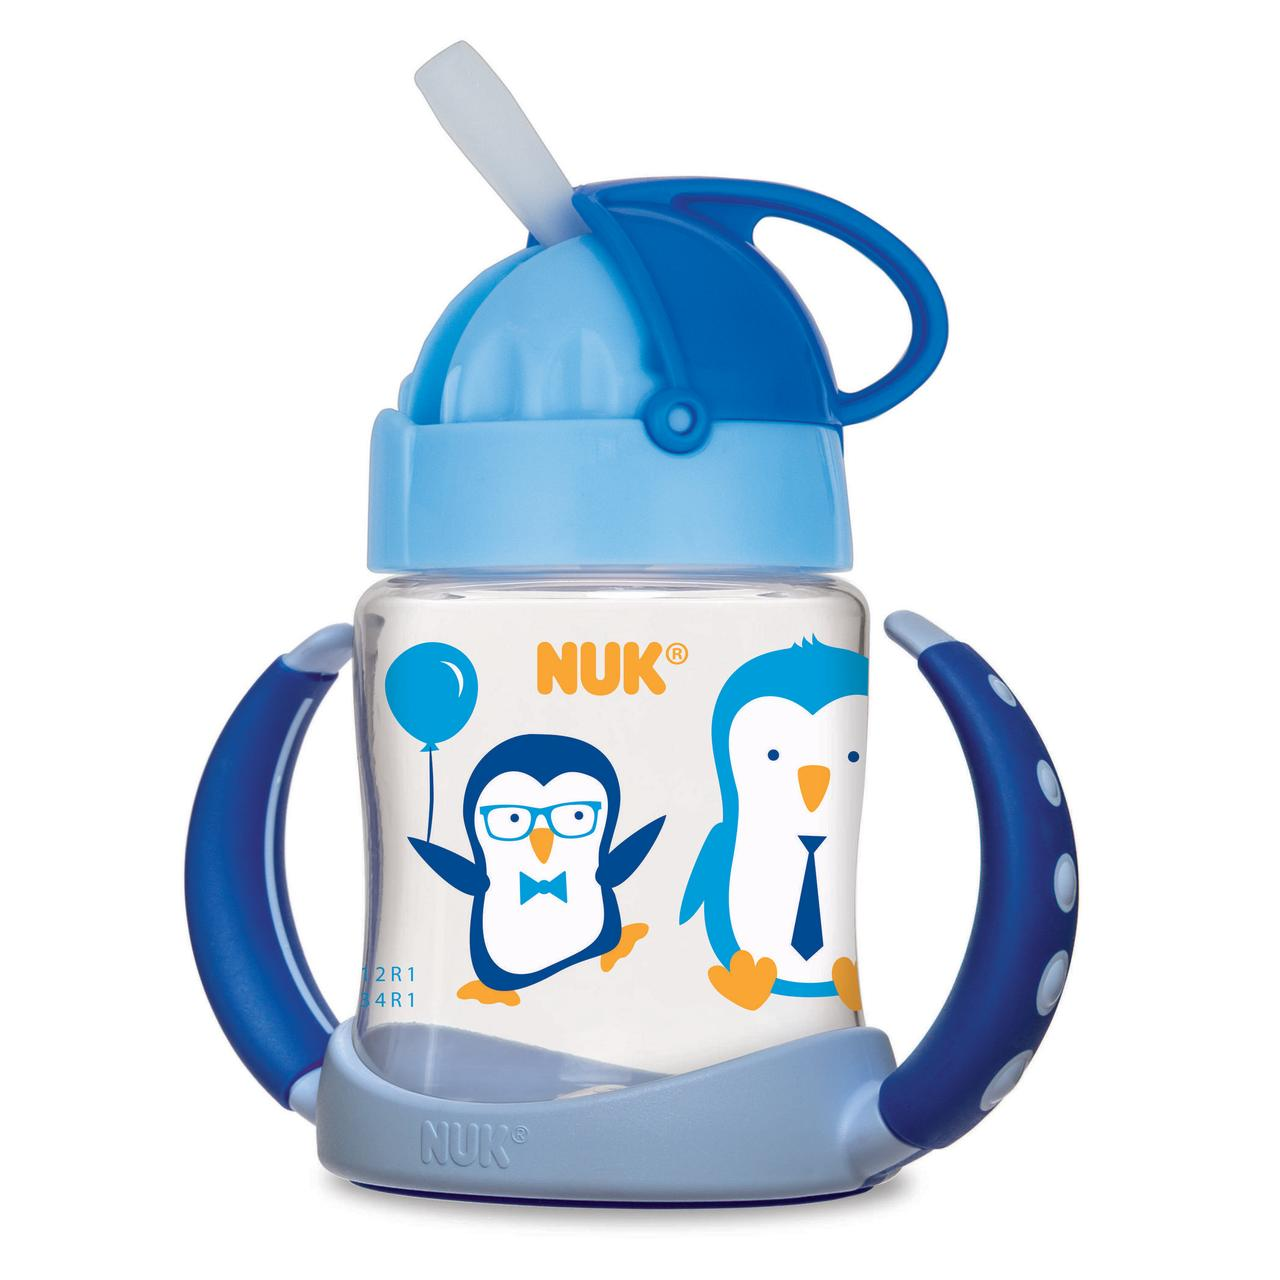 NUK Straw Learner Cup 6+m, 1.0 CT (Design May Vary) by Nuk